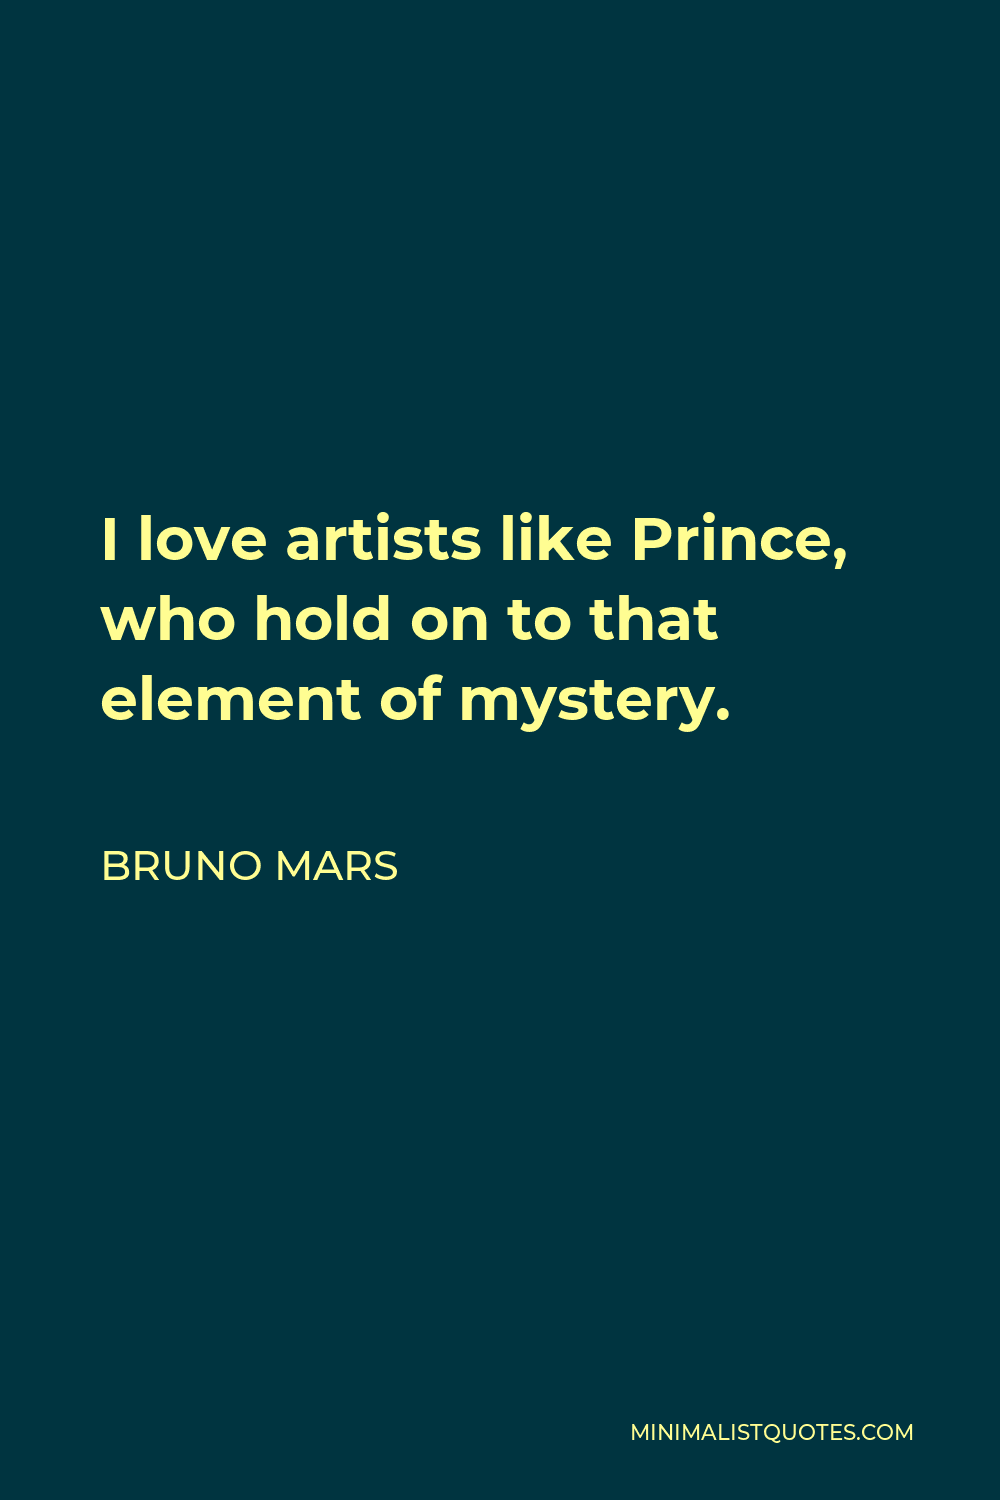 Bruno Mars Quote - I love artists like Prince, who hold on to that element of mystery.